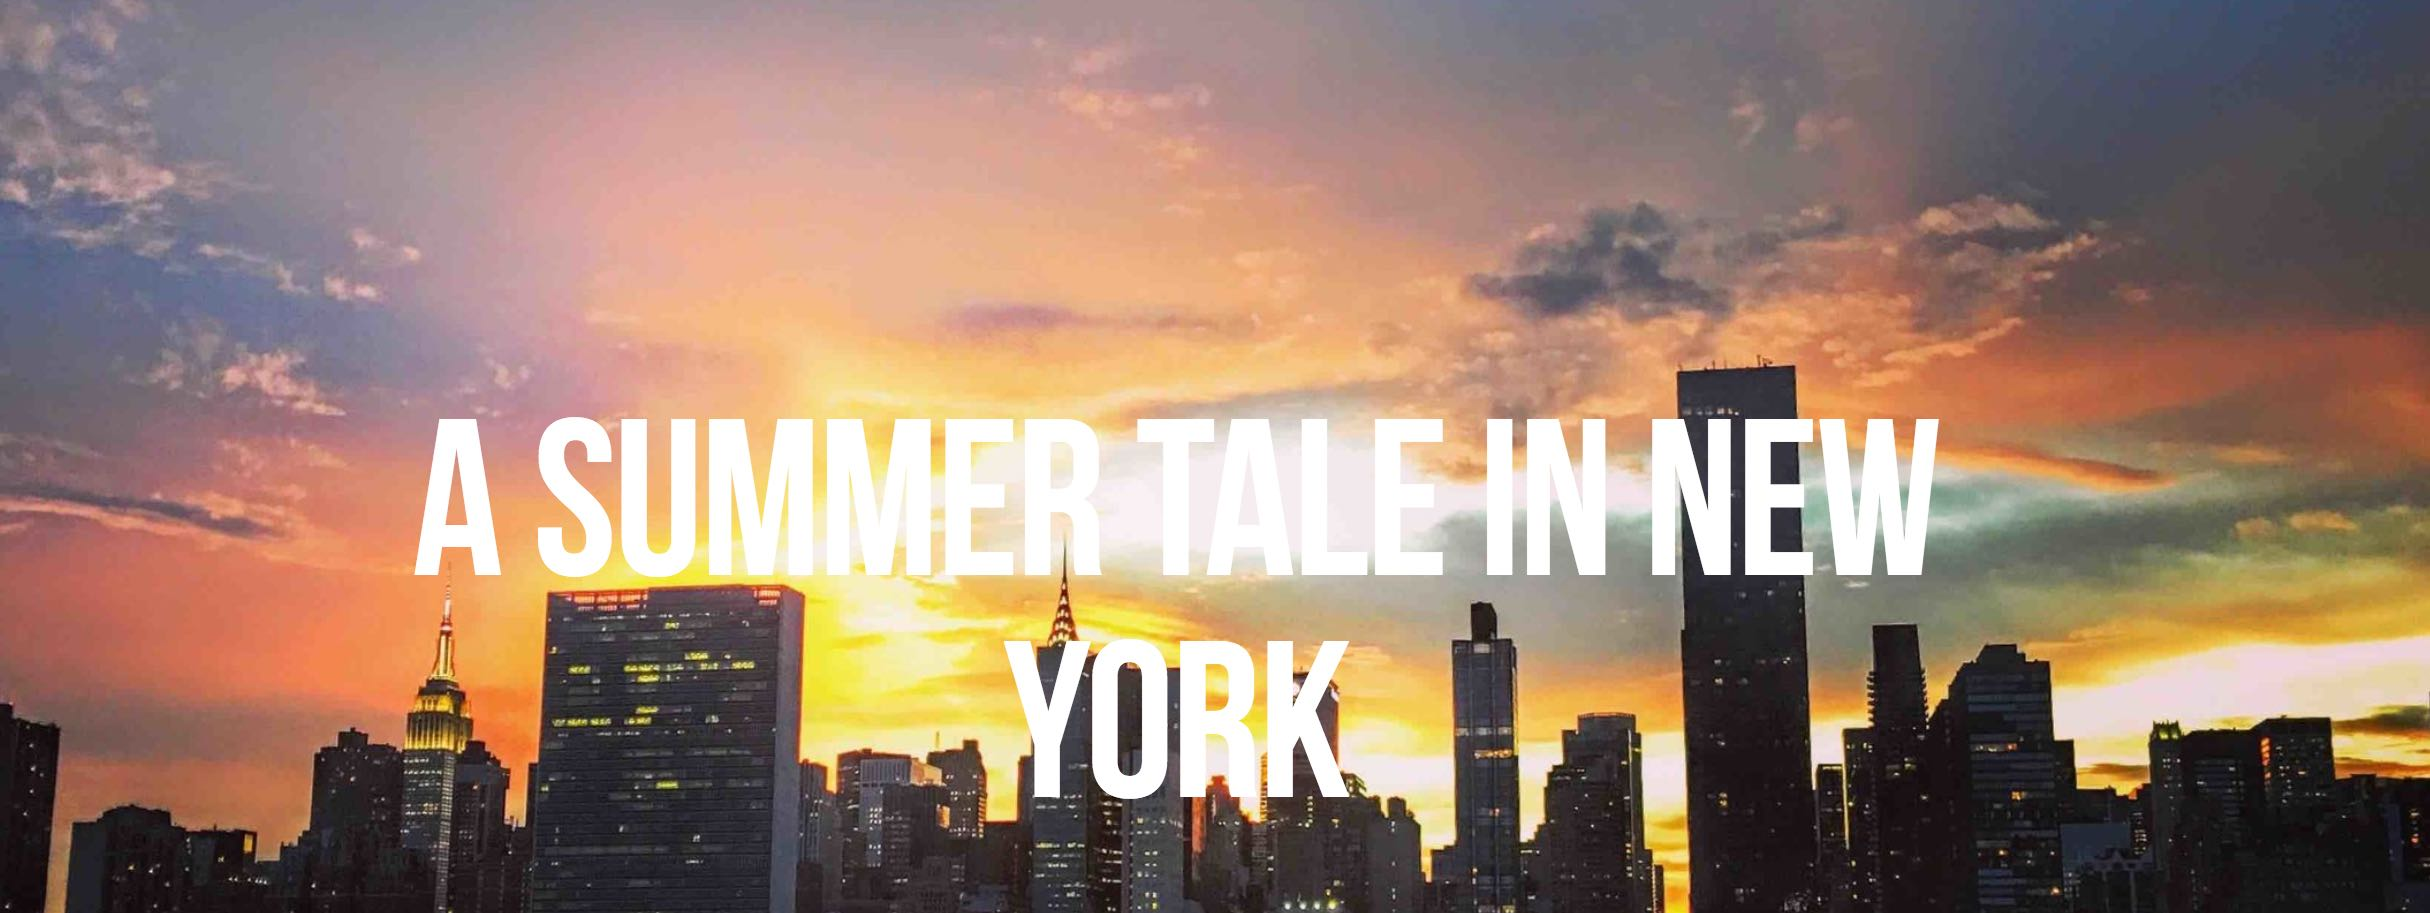 Click here to explore Coney Island, Long Island City waterfront, Brooklyn Bridge Park in an adorable summer tale.